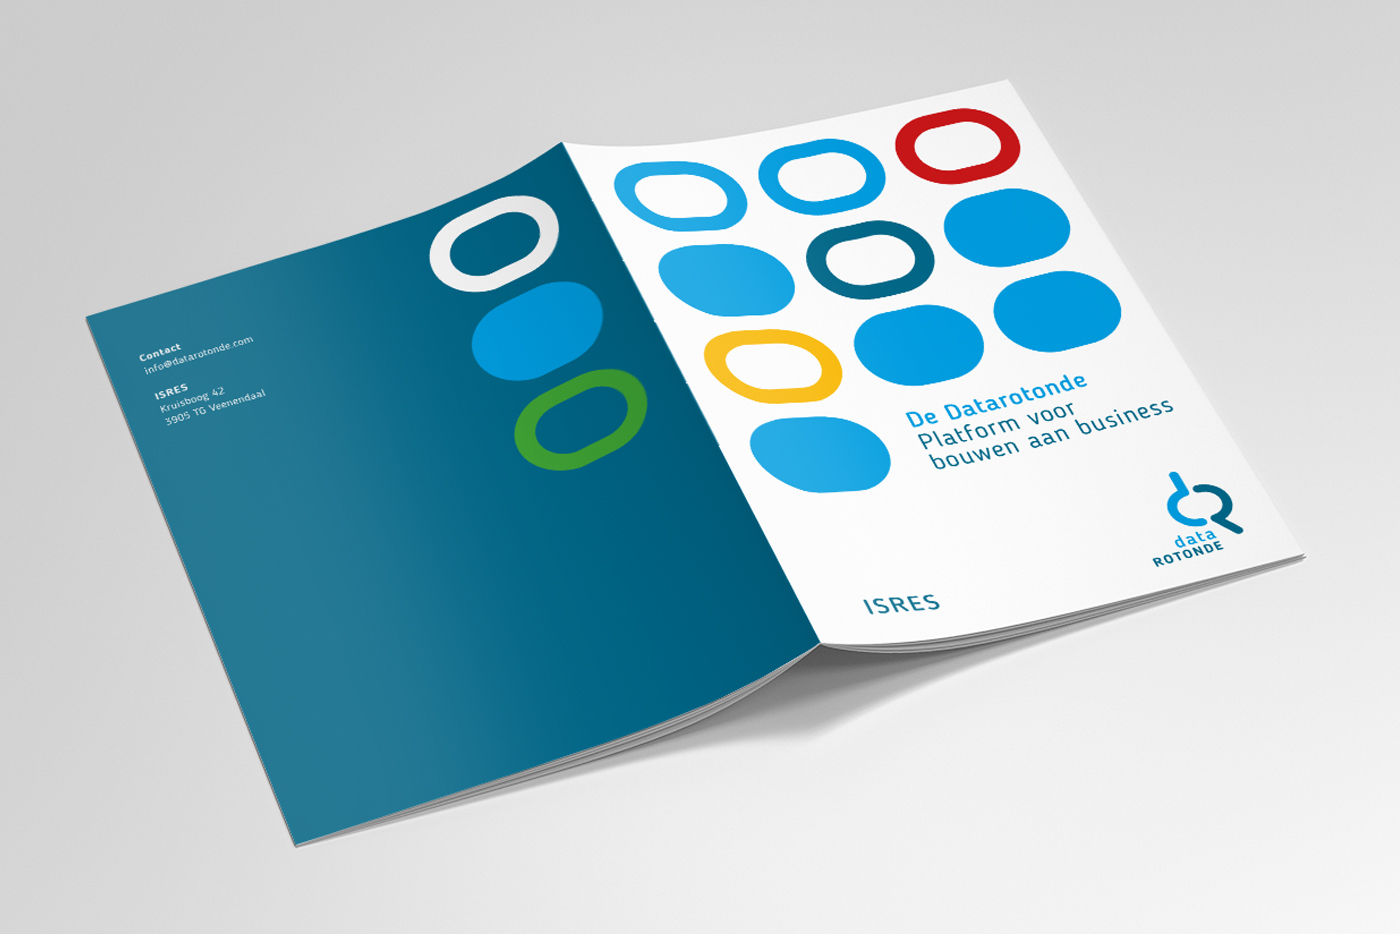 Ontwerp brochure Datarotonde